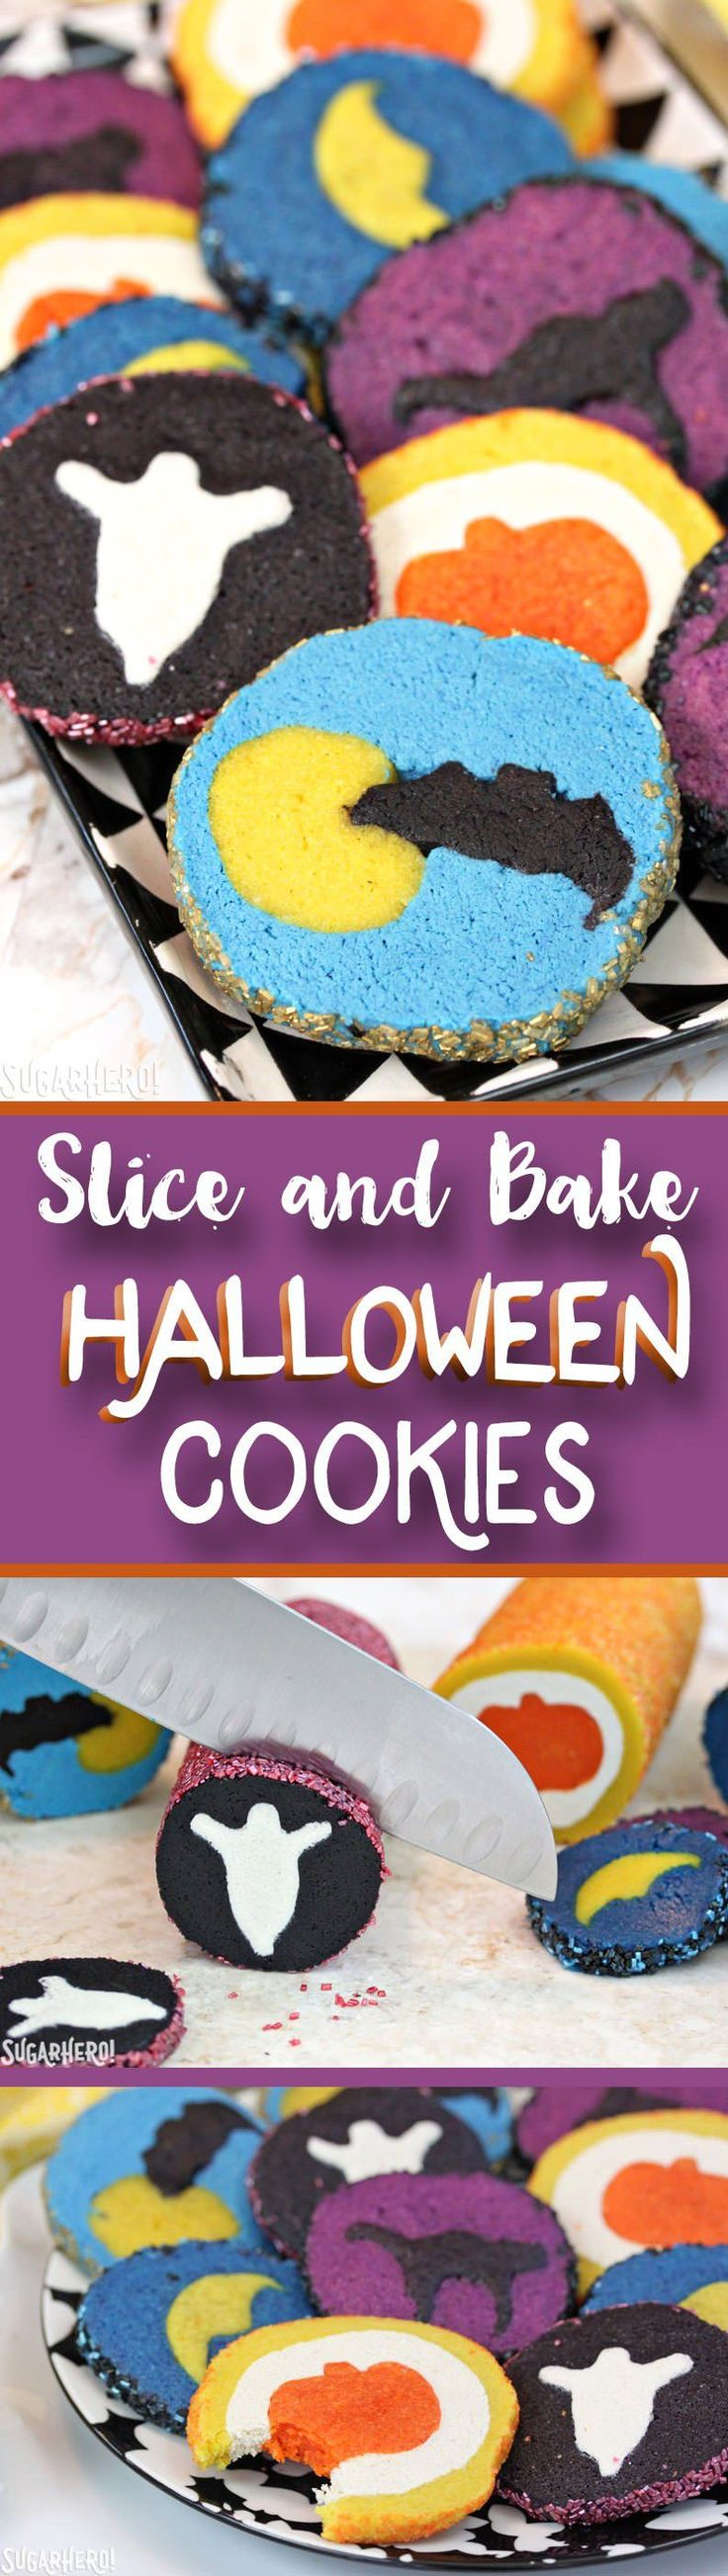 Slice and Bake Halloween Cookies are fun Halloween sugar cookies with surprise designs hidden inside! | From SugarHero.com